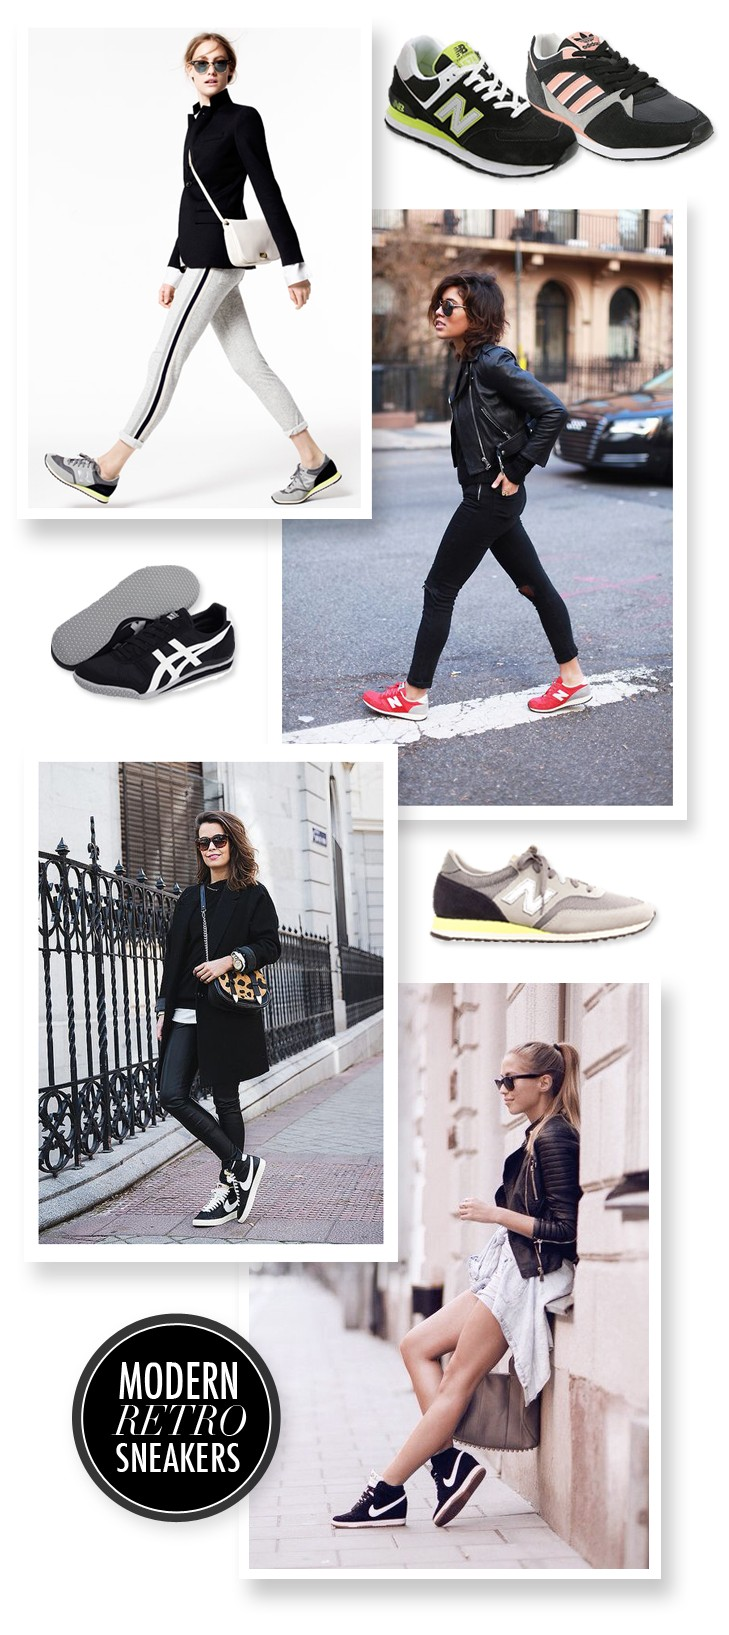 Sneakers on What I Wore